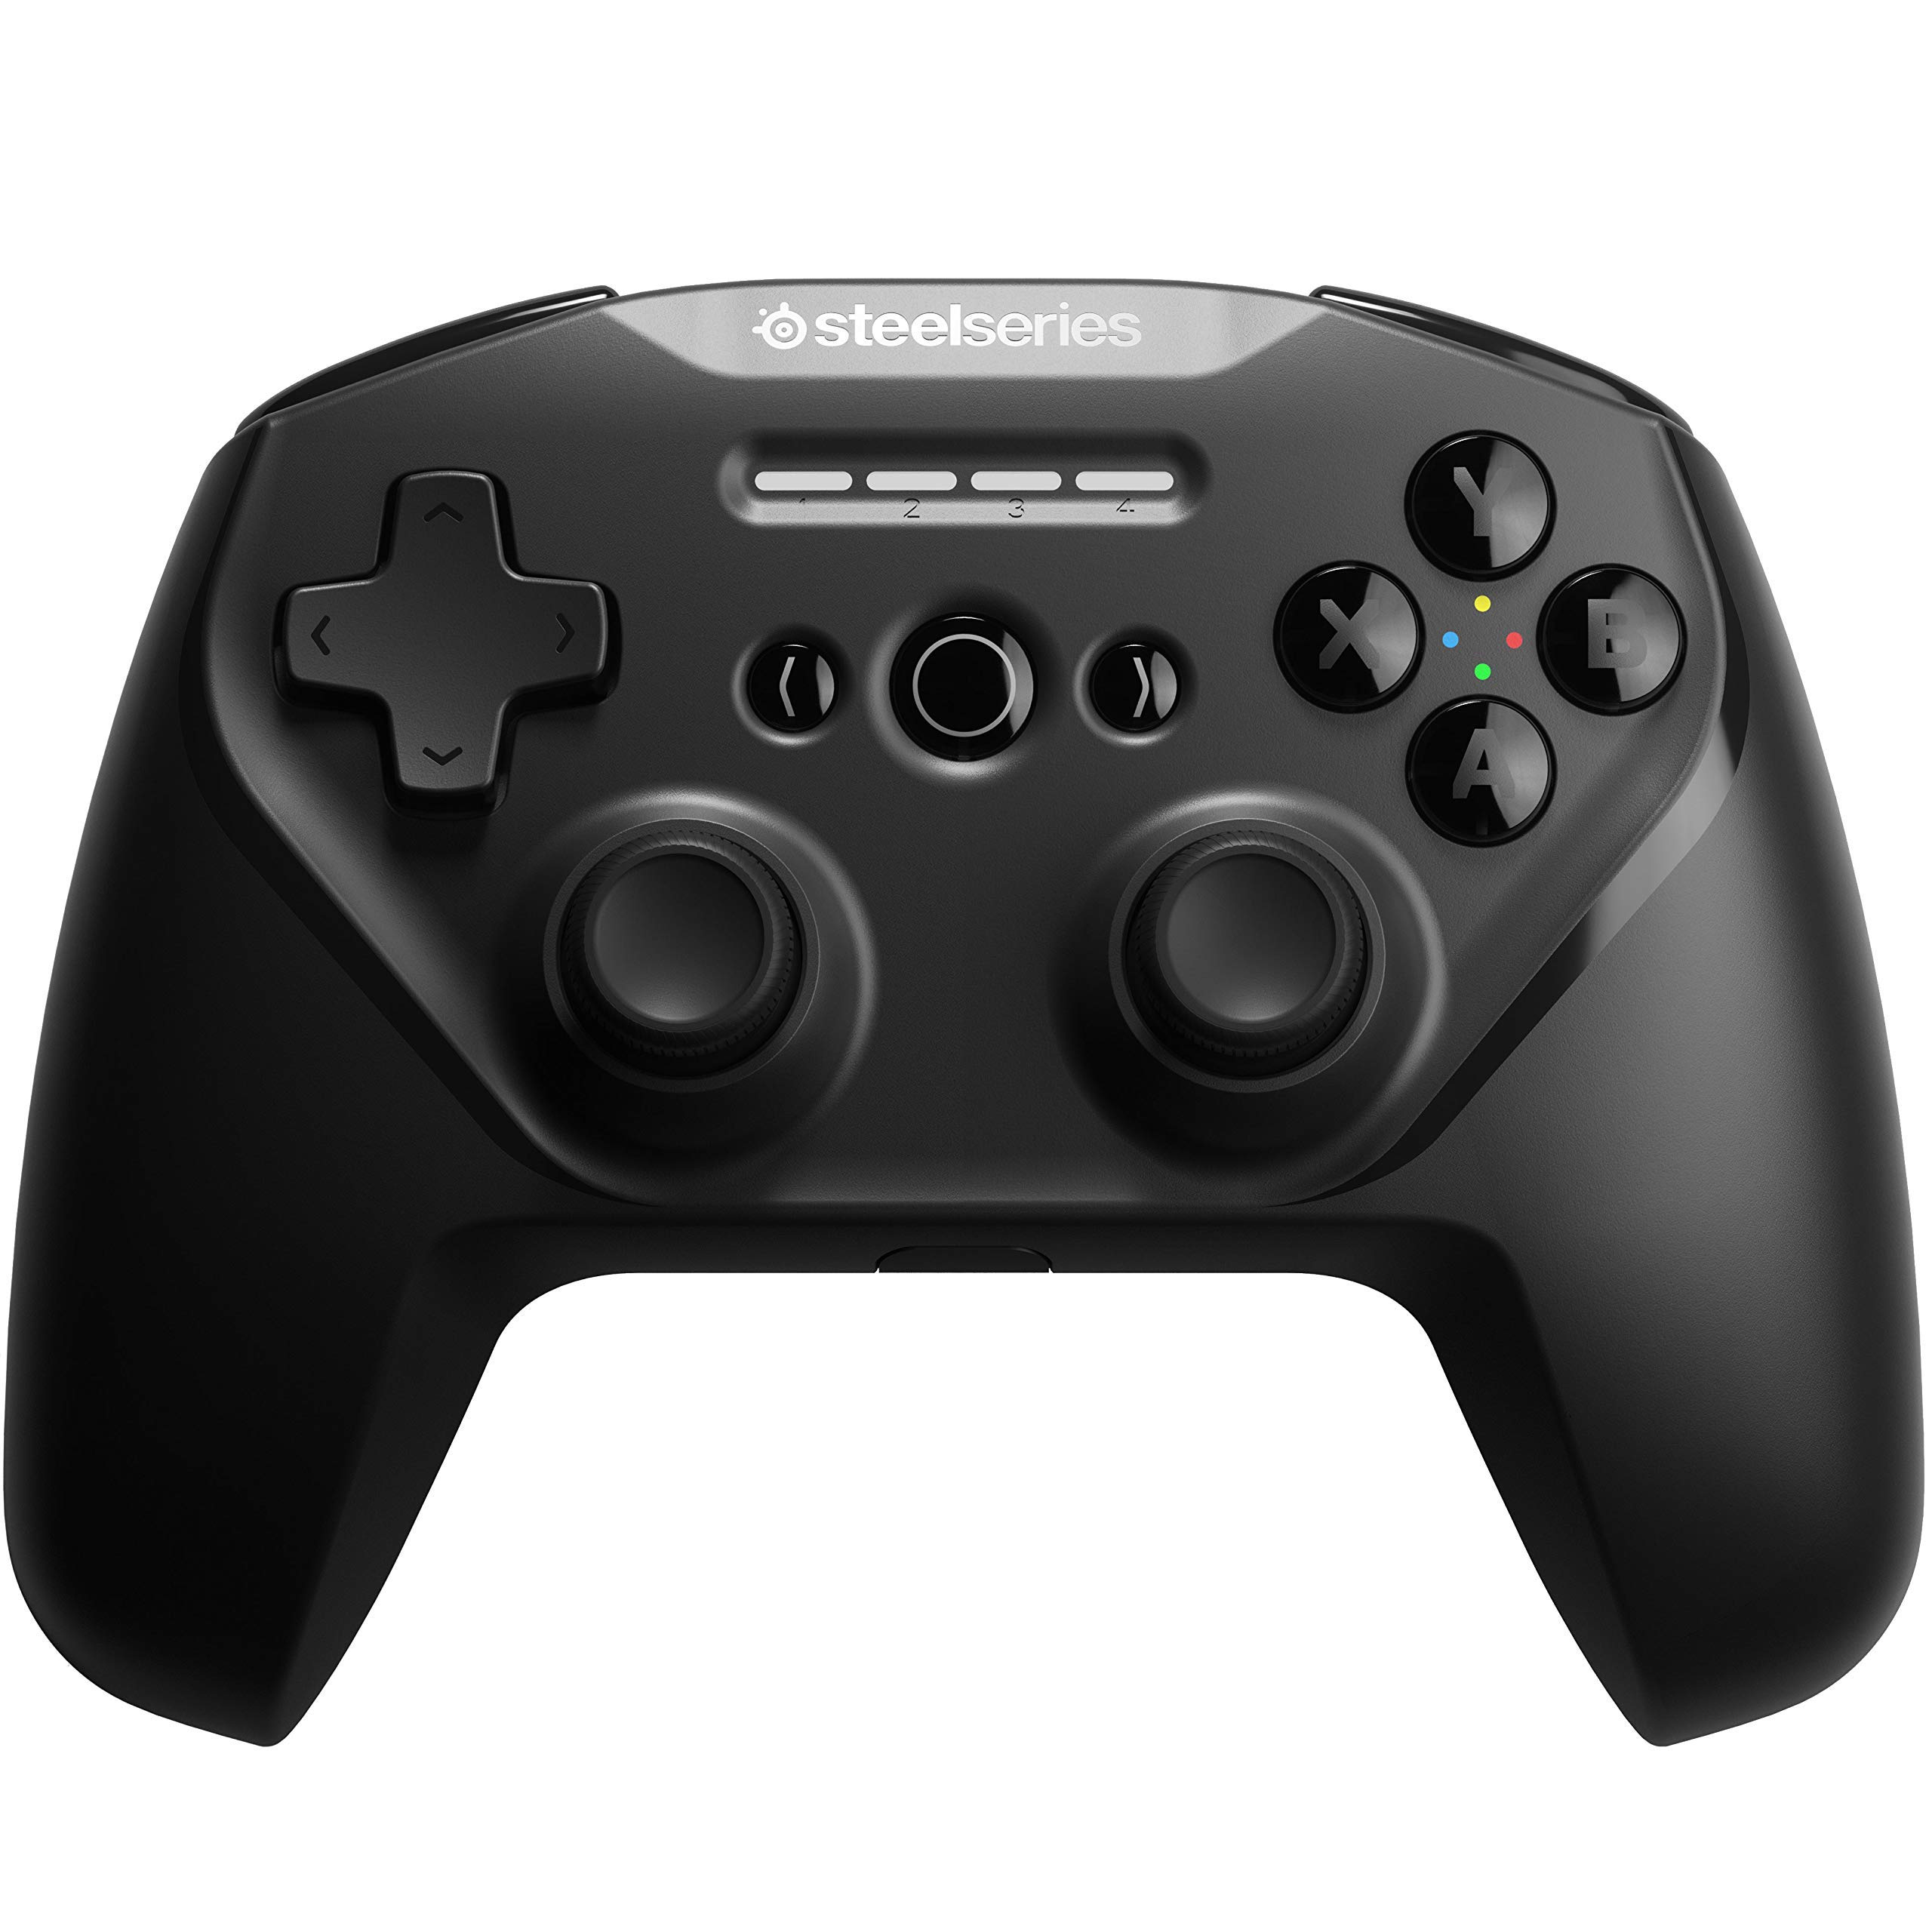 SteelSeries Stratus Duo Wireless Gaming Controller - Made for Android, Windows, and VR - Dual-Wireless Connectivity - High-Performance Materials - Supports Fortnite Mobile (Renewed)